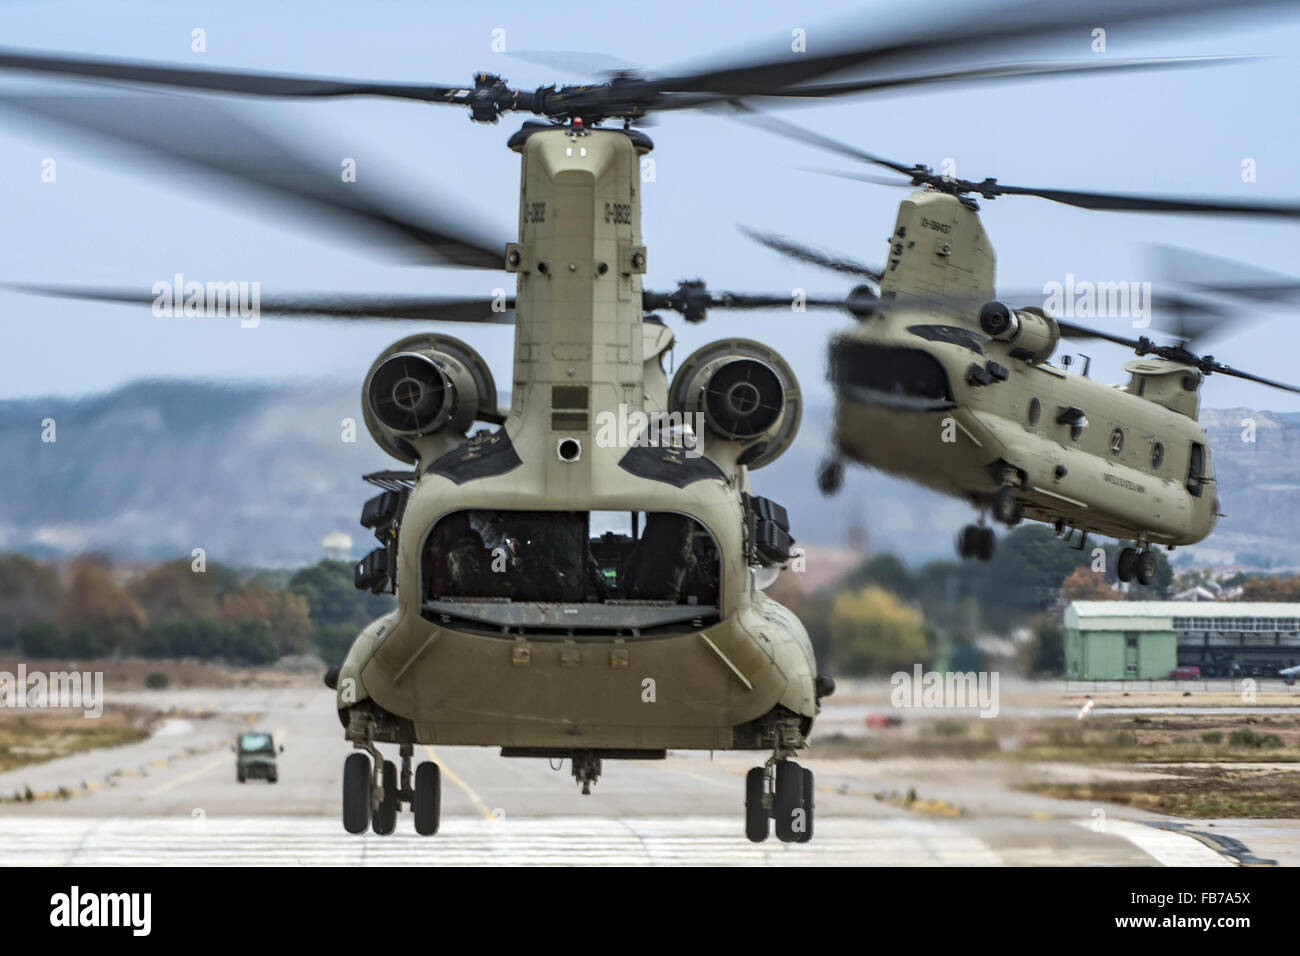 shnook helicopter with Stock Photo Two Ch 47f Chinook Helicopters Take Off Boeing Ch 47 Chinooks American 92974726 on File Dutch Chinook furthermore 6819591023 as well File Sikorsky CH 54A Tarhe  S 64A   USA   Army AN0803366 also Sikorsky Mh 53e Sea Dragon as well OD AC028.